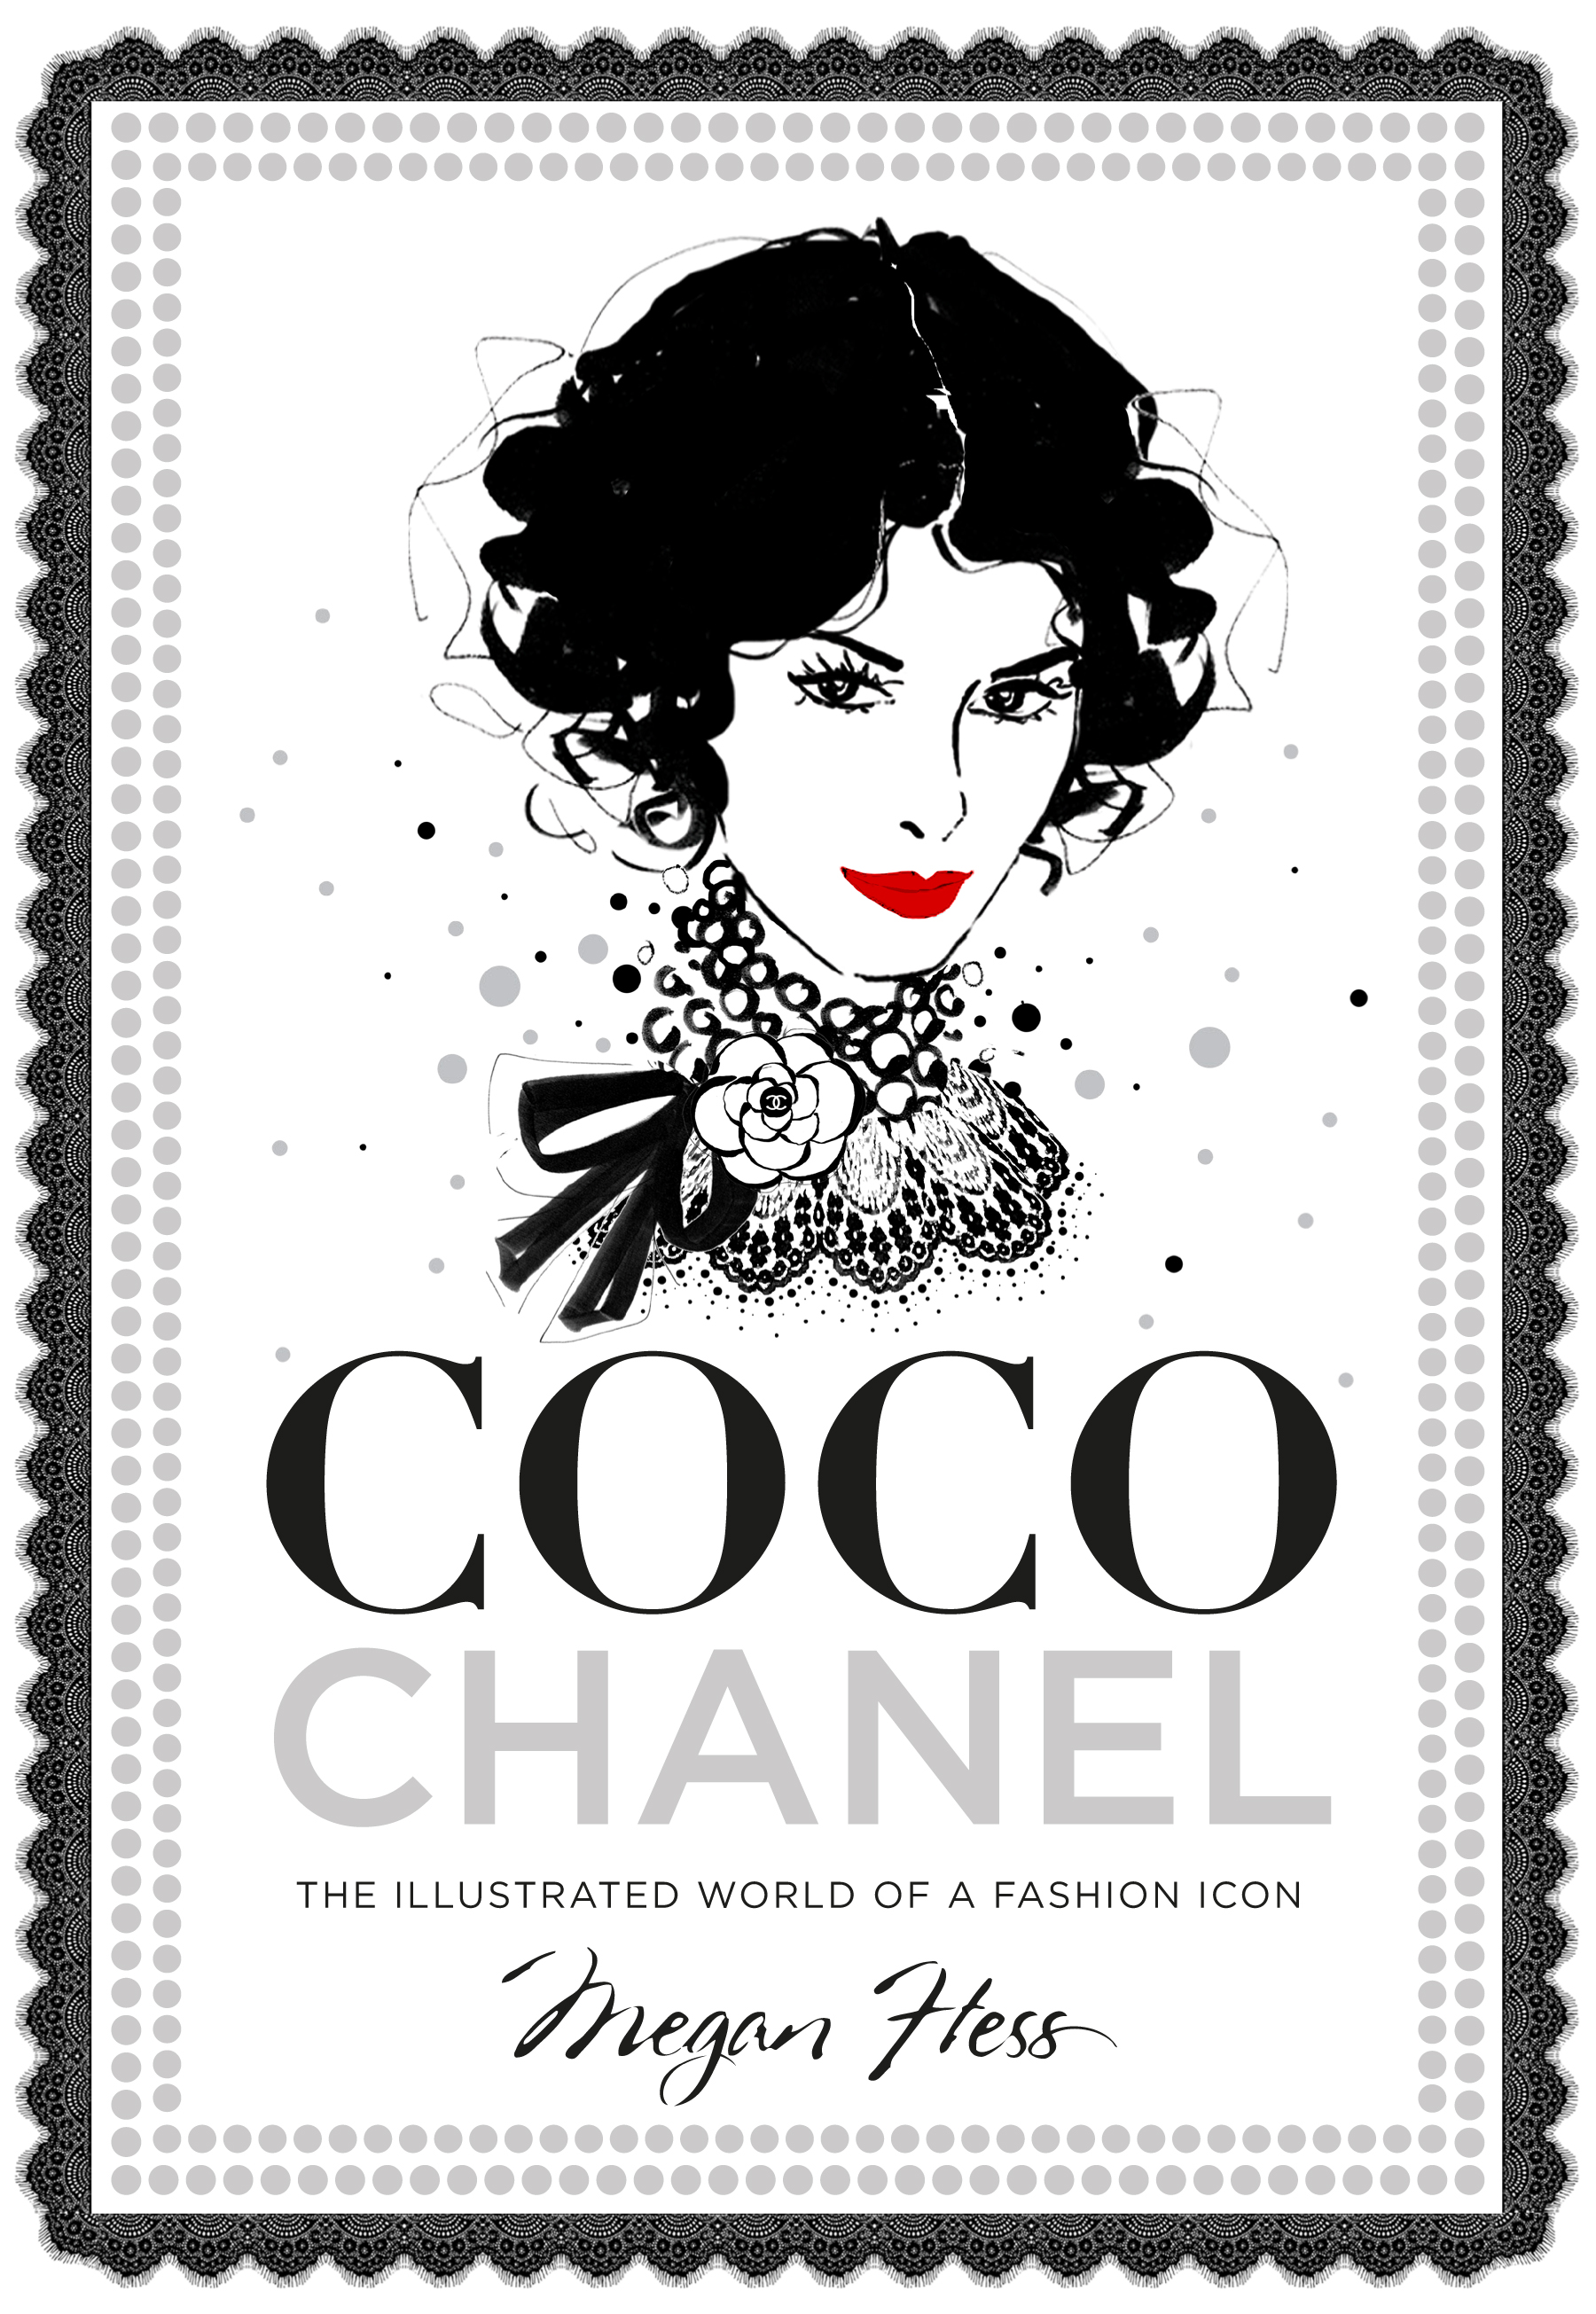 Review Coco Chanel The Illustrated World Of A Fashion Icon Megan Hess